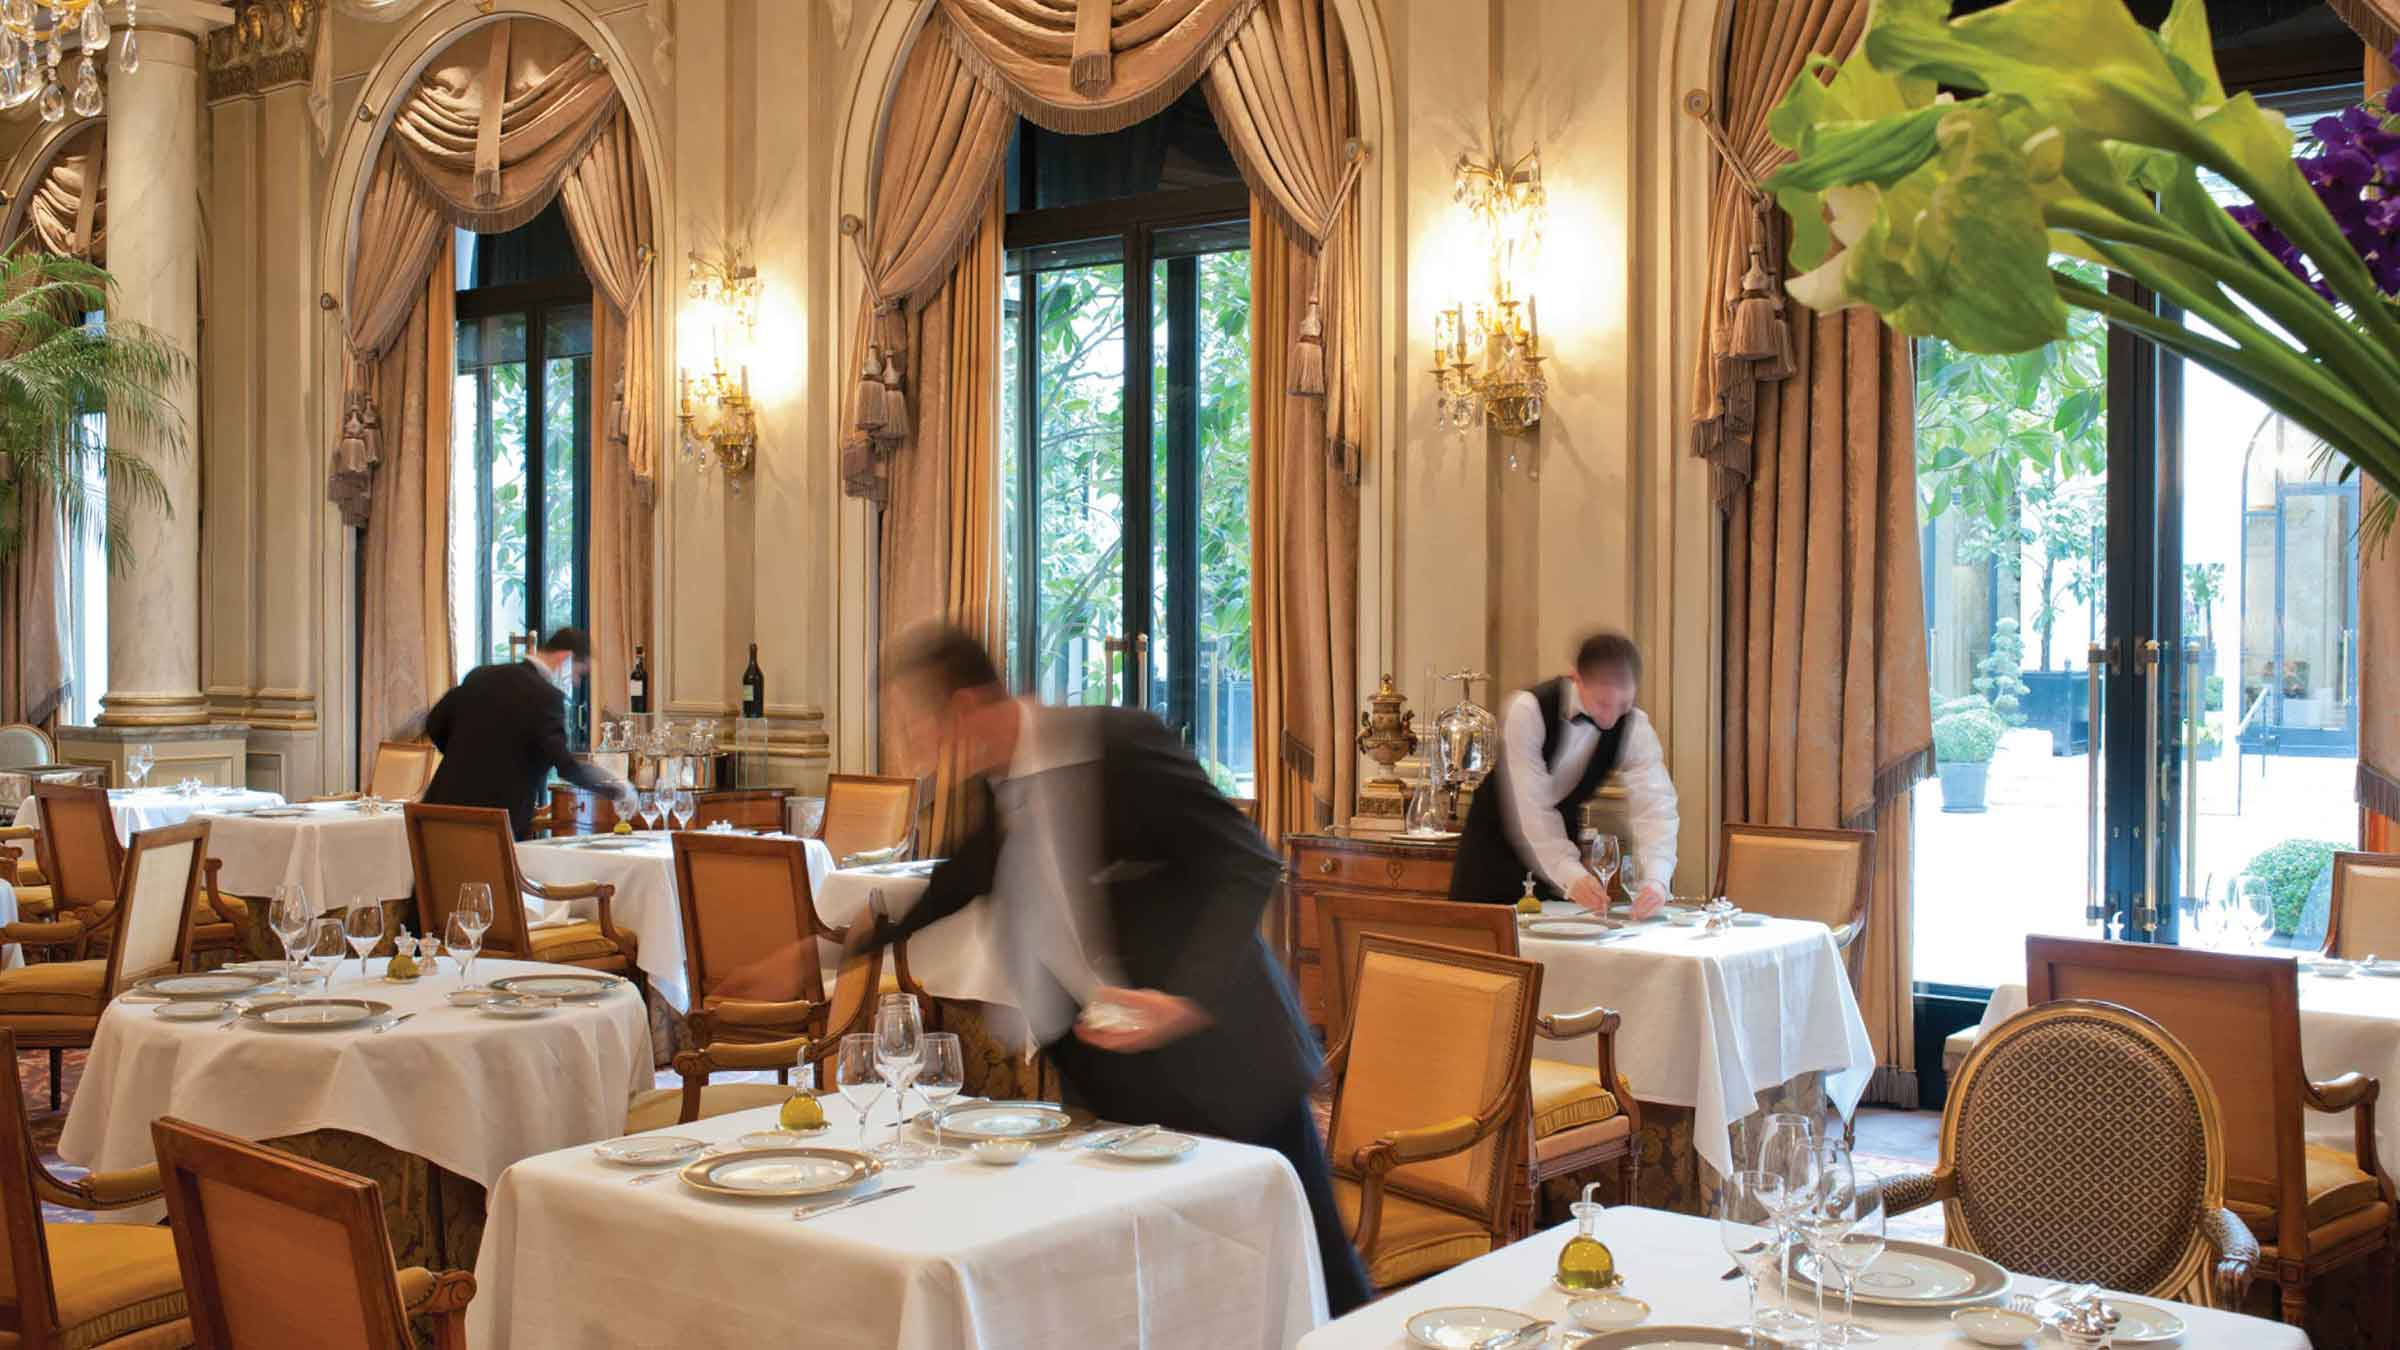 Le Cinq at Four Seasons Hotel George V Gets 3rd Michelin Star